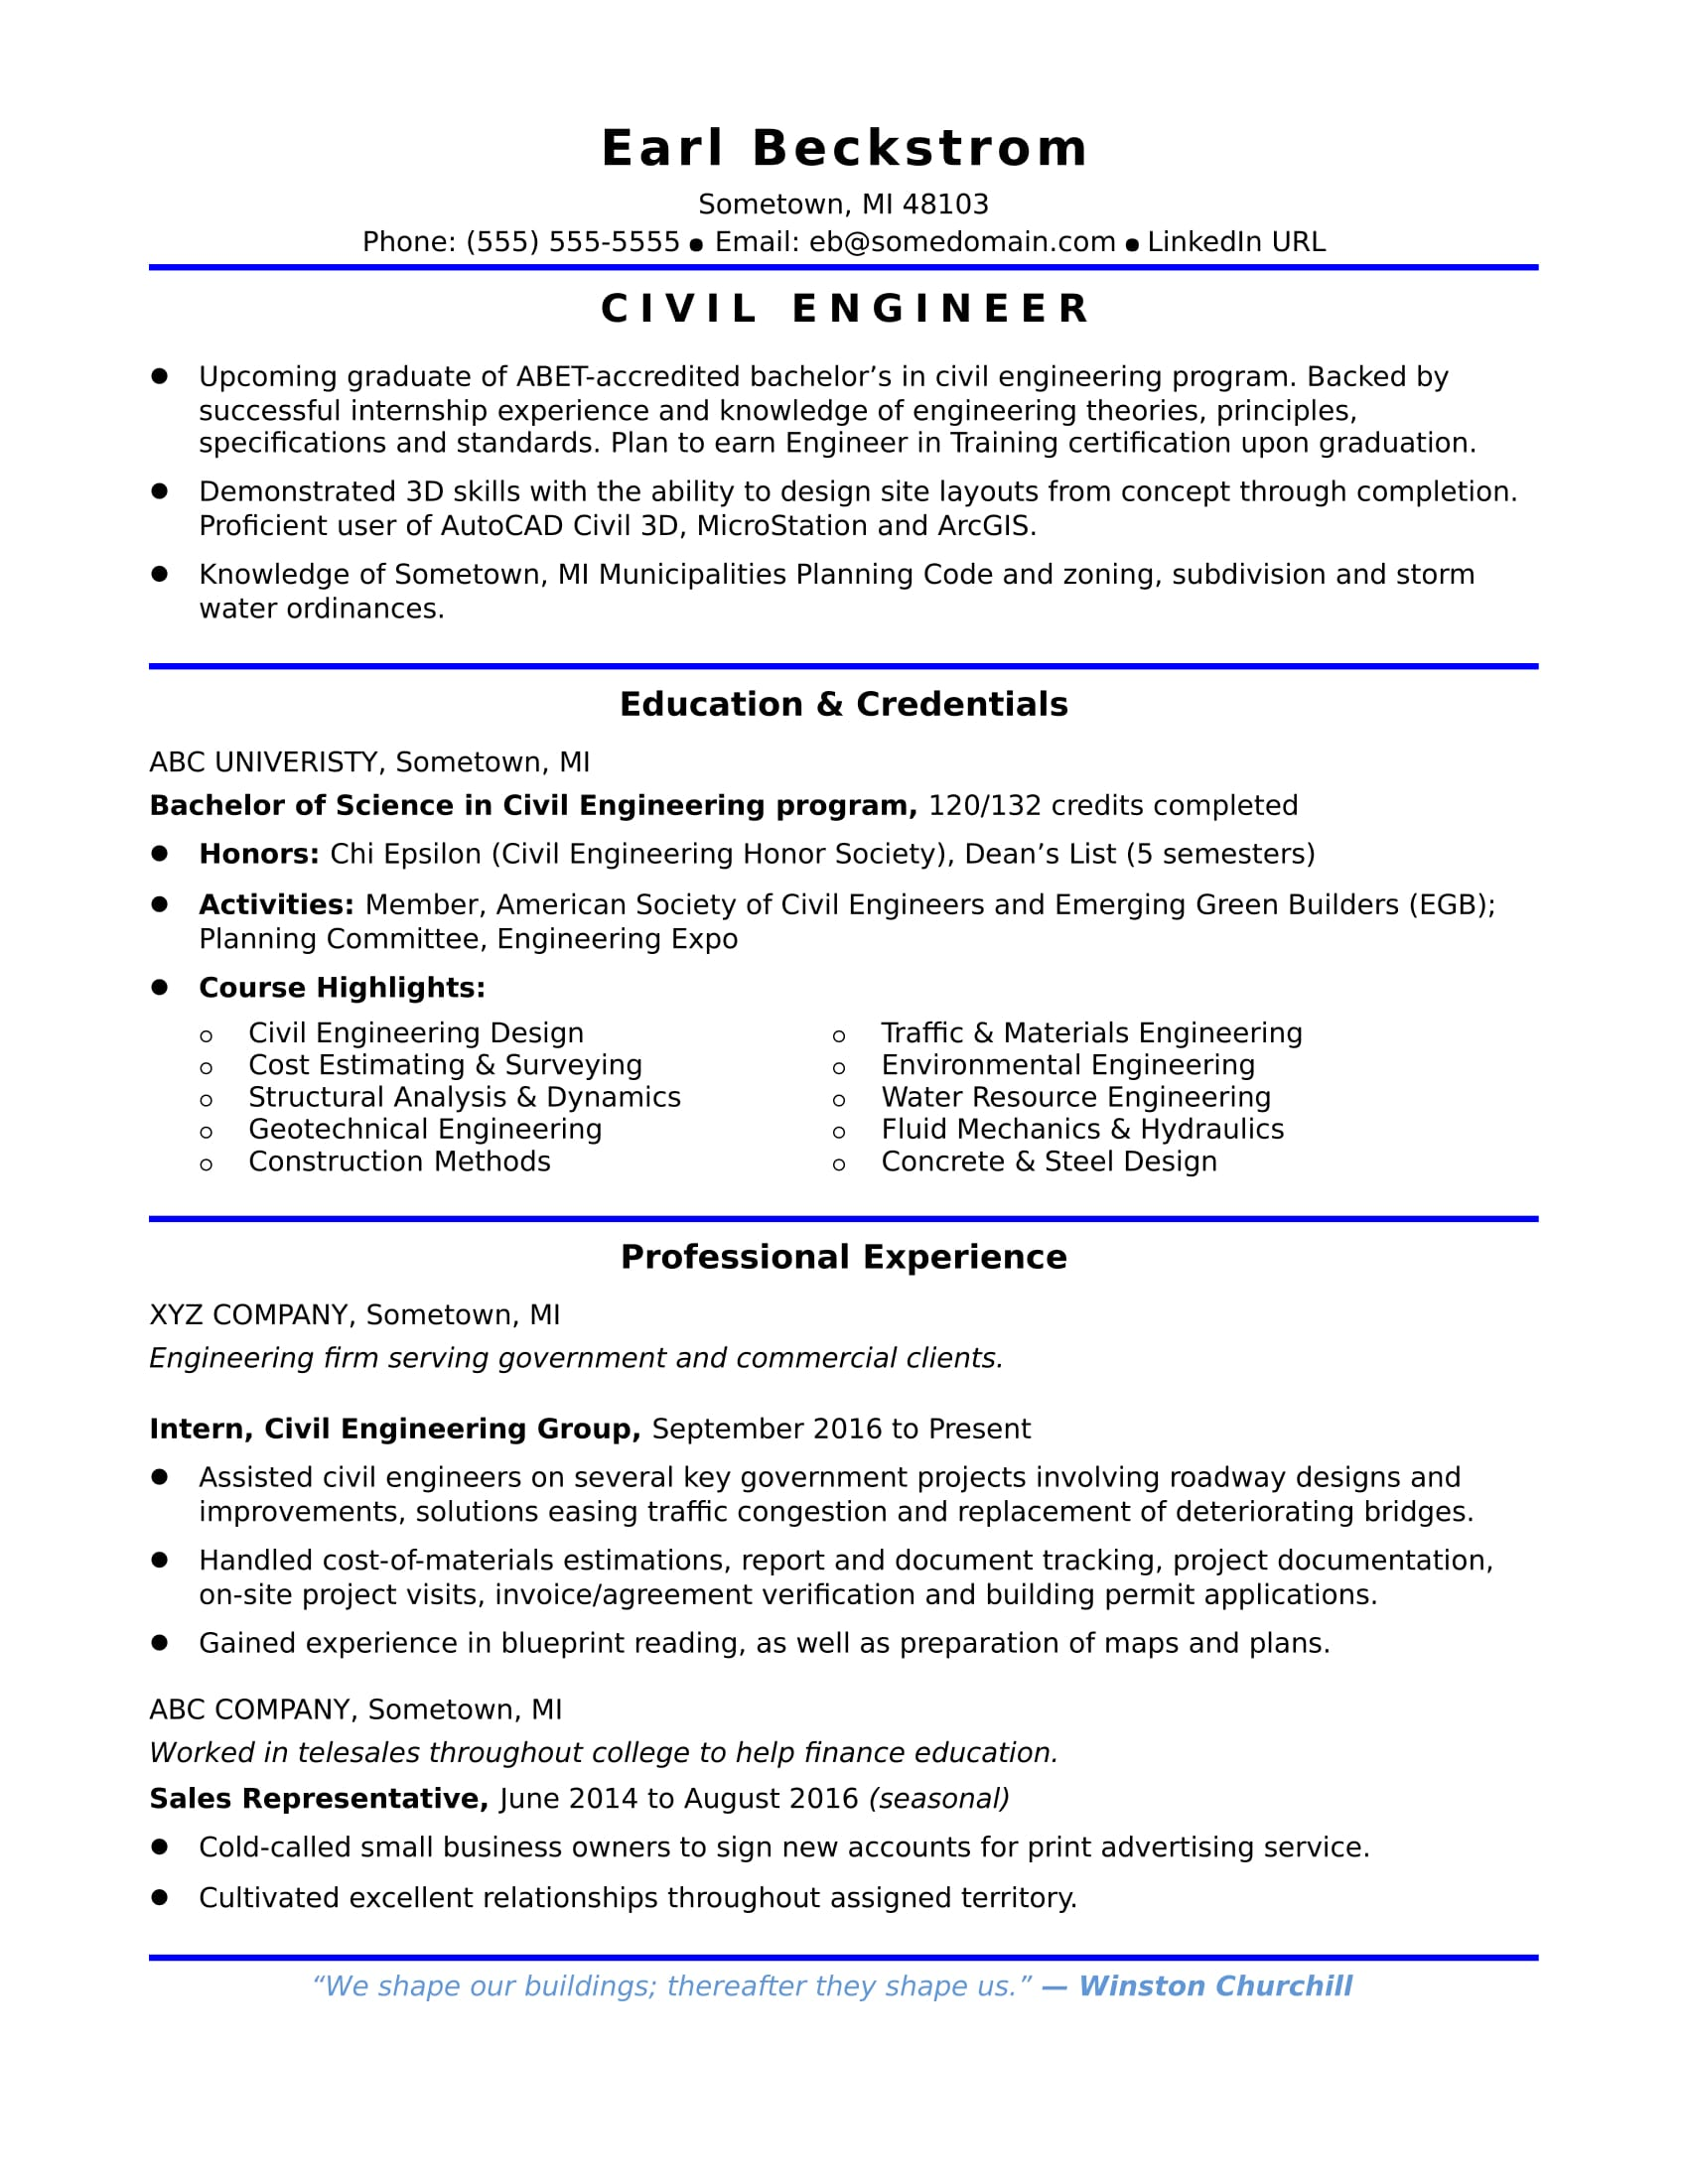 Sample resume for an entry level civil engineer monster sample resume for an entry level civil engineer yelopaper